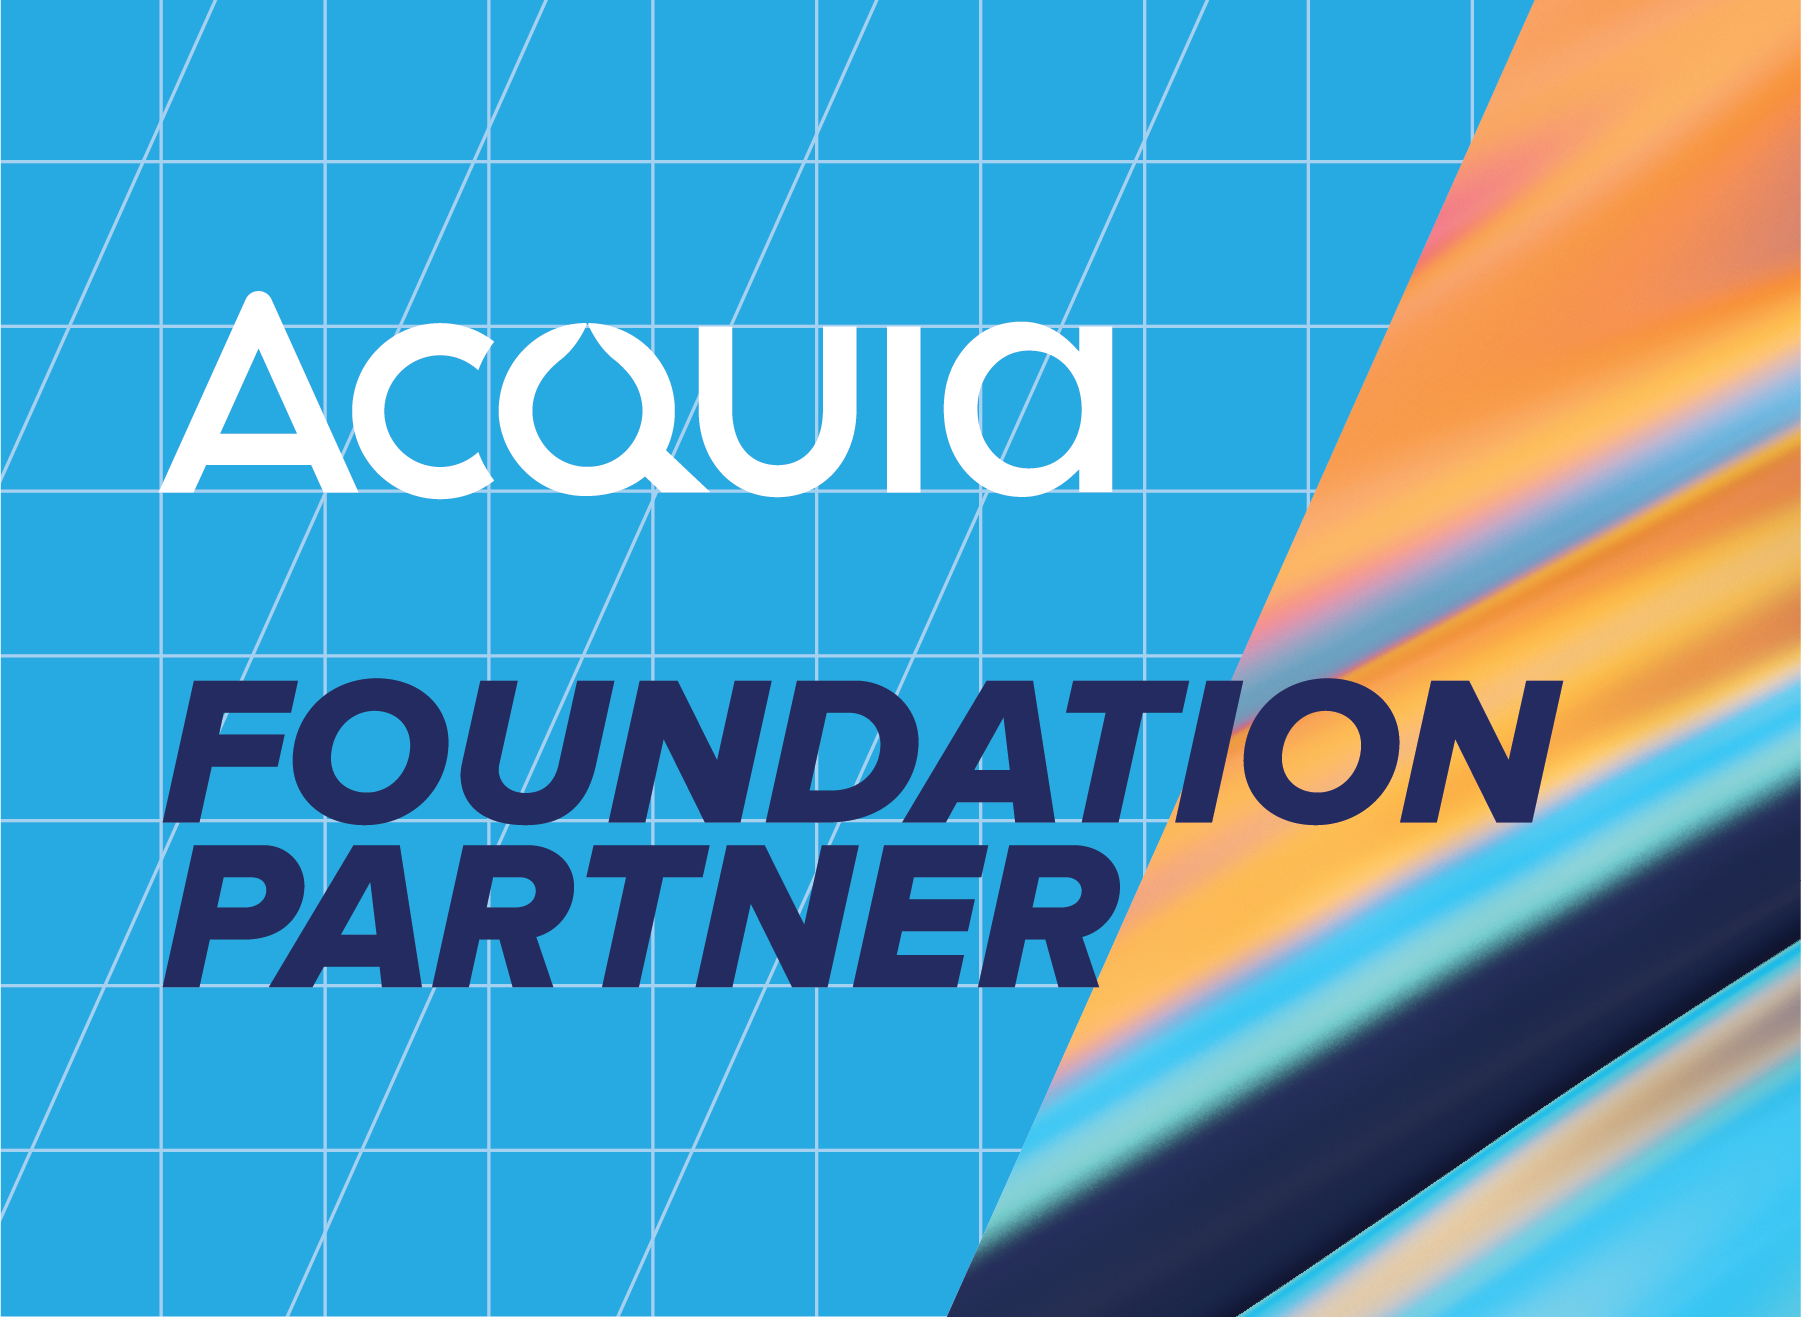 Acquia Foundation Partner